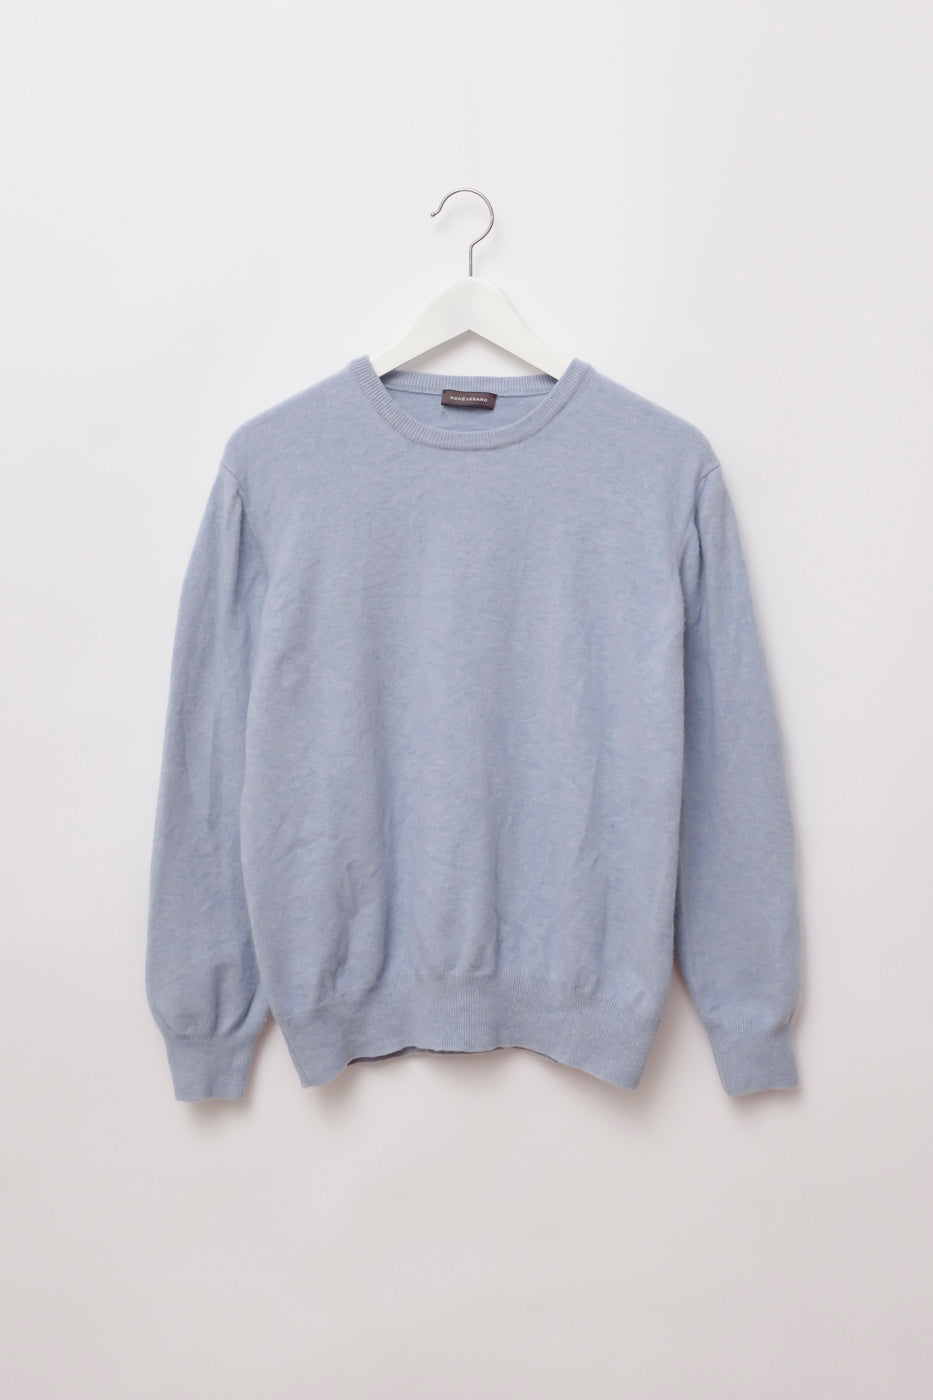 0097_RENÉ LEZARD PALE BLUE SWEATER